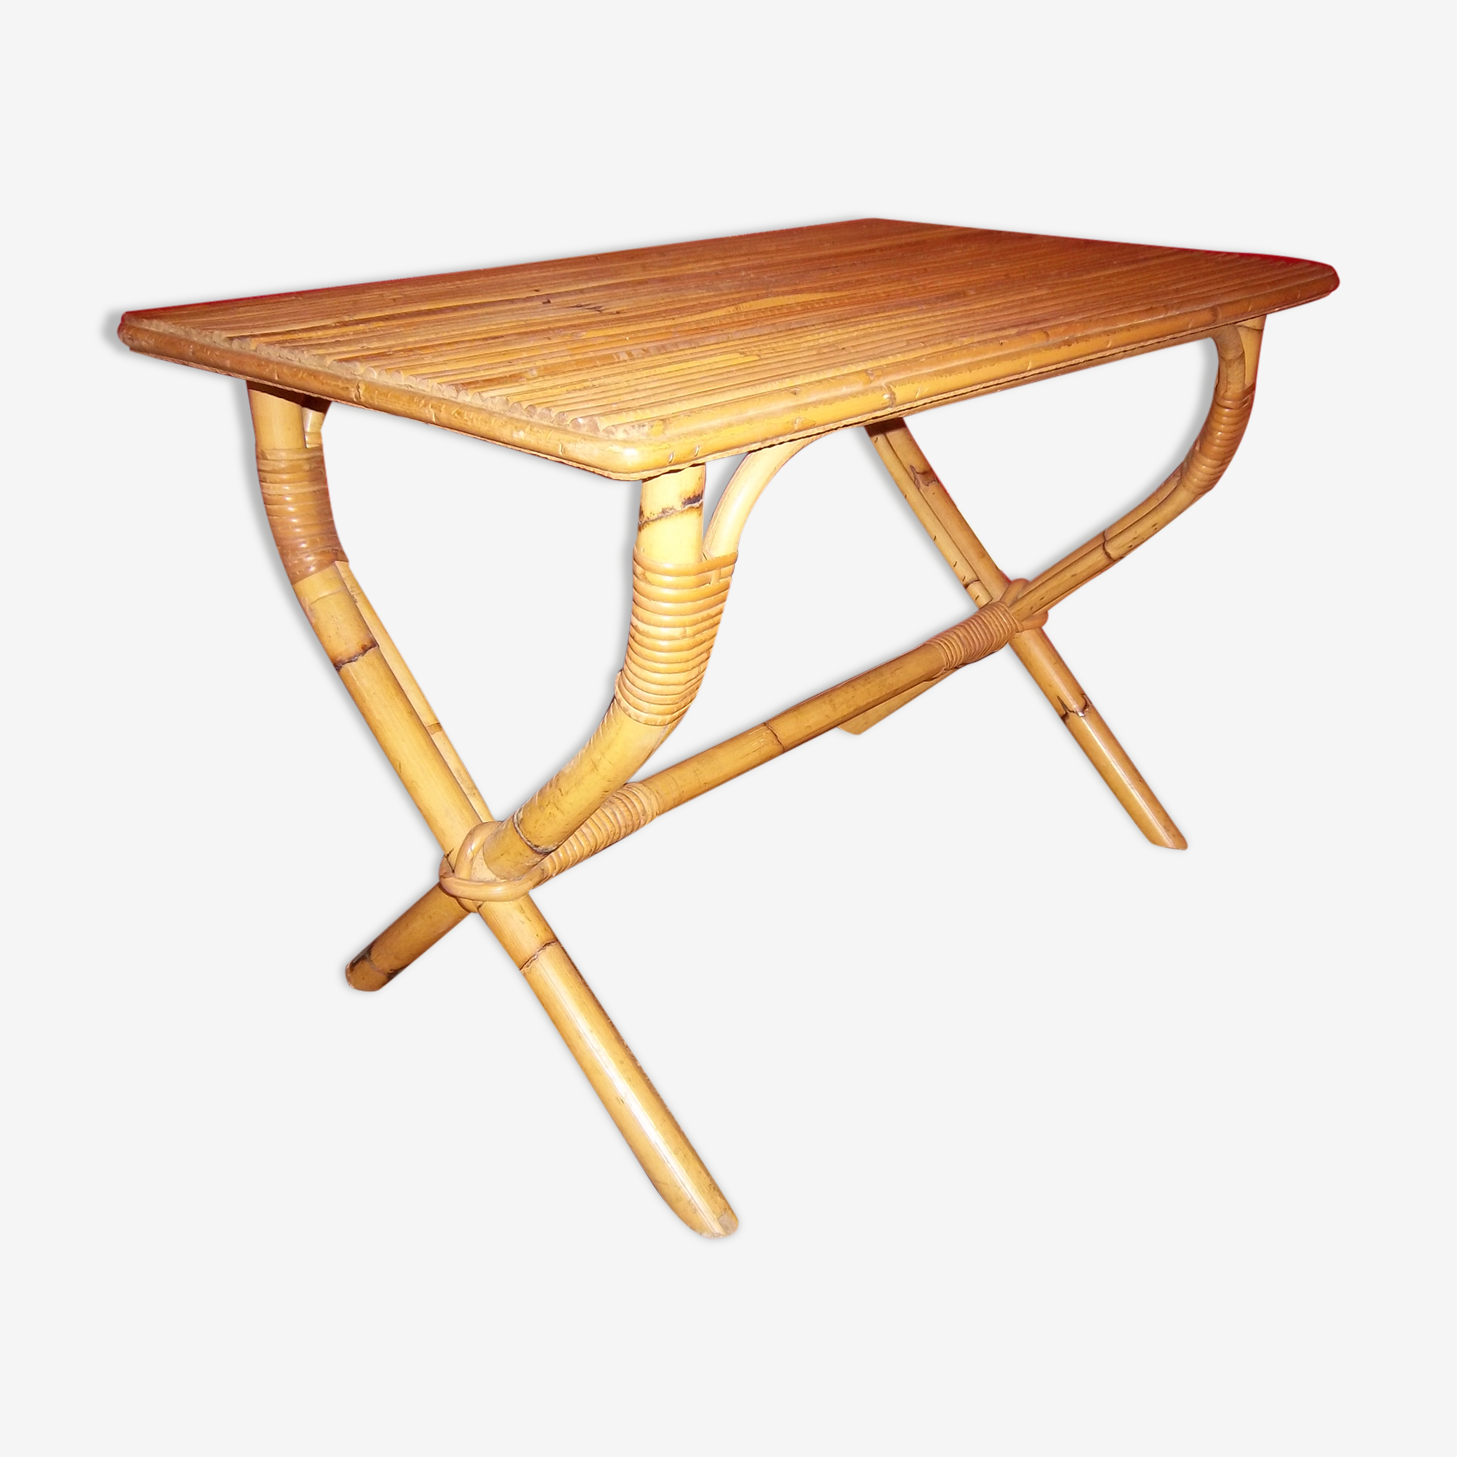 Table de salon en rotin et bambou de 1960